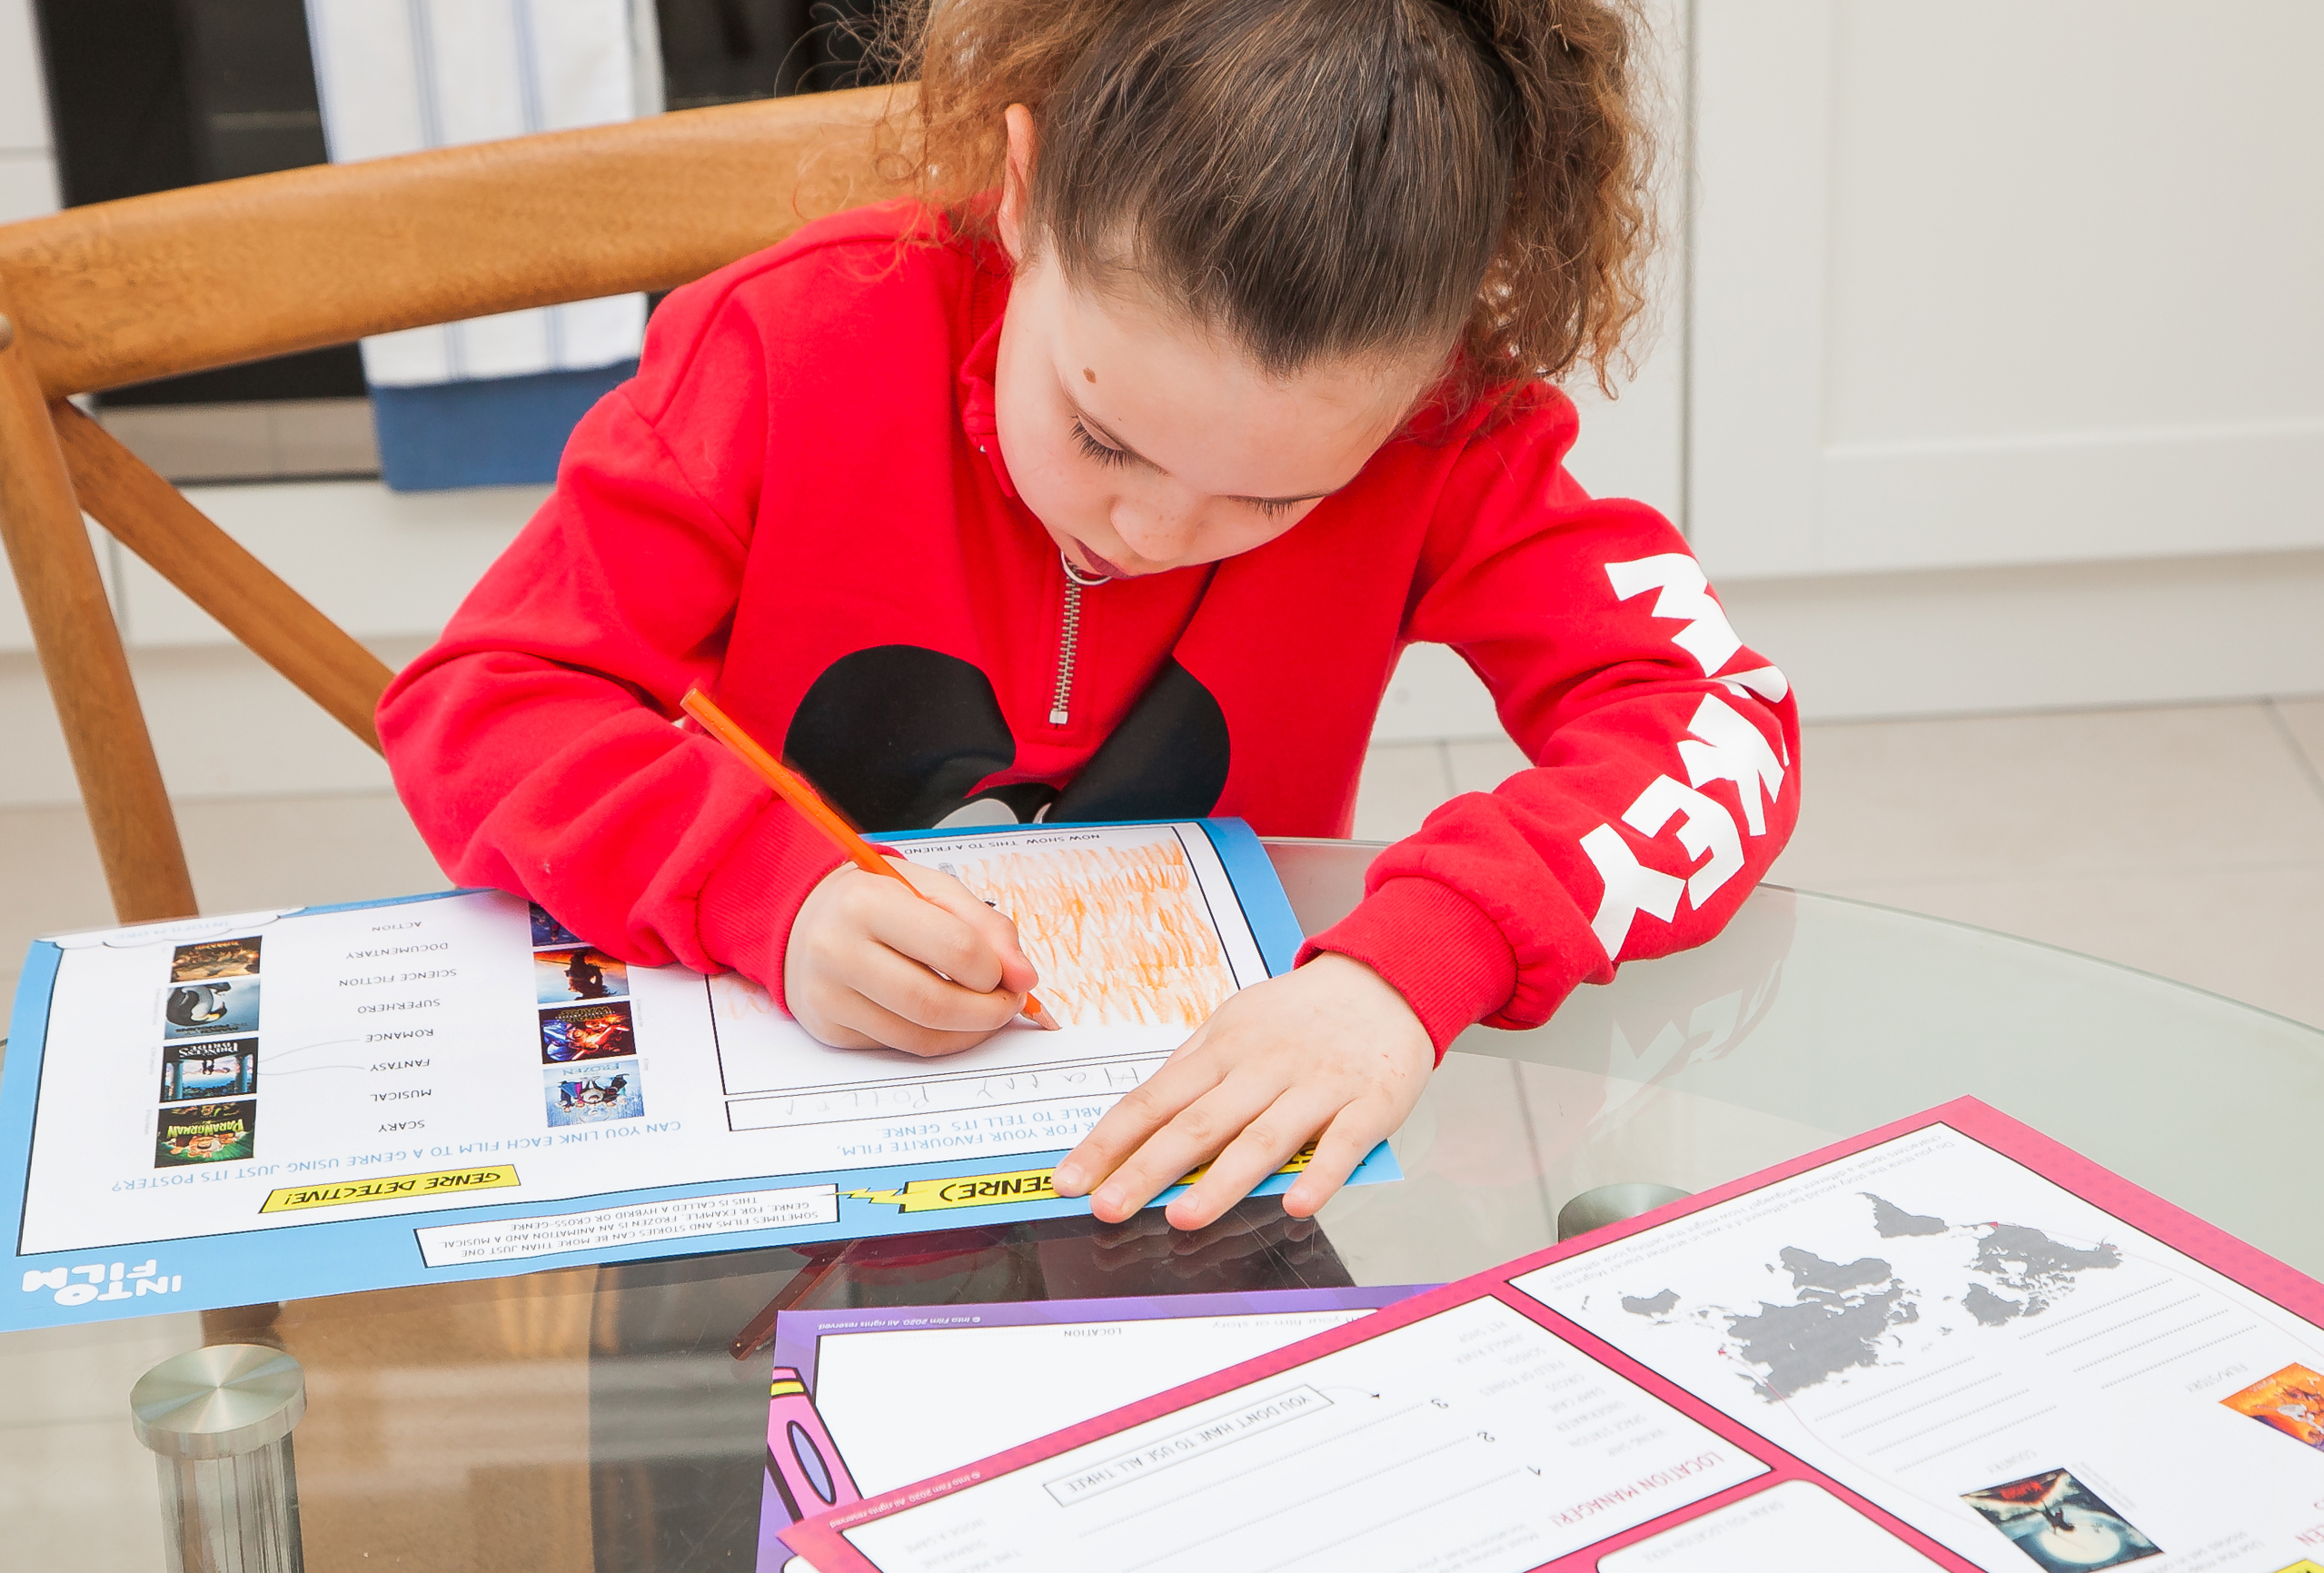 New education resource helps NI children tell their creative stories